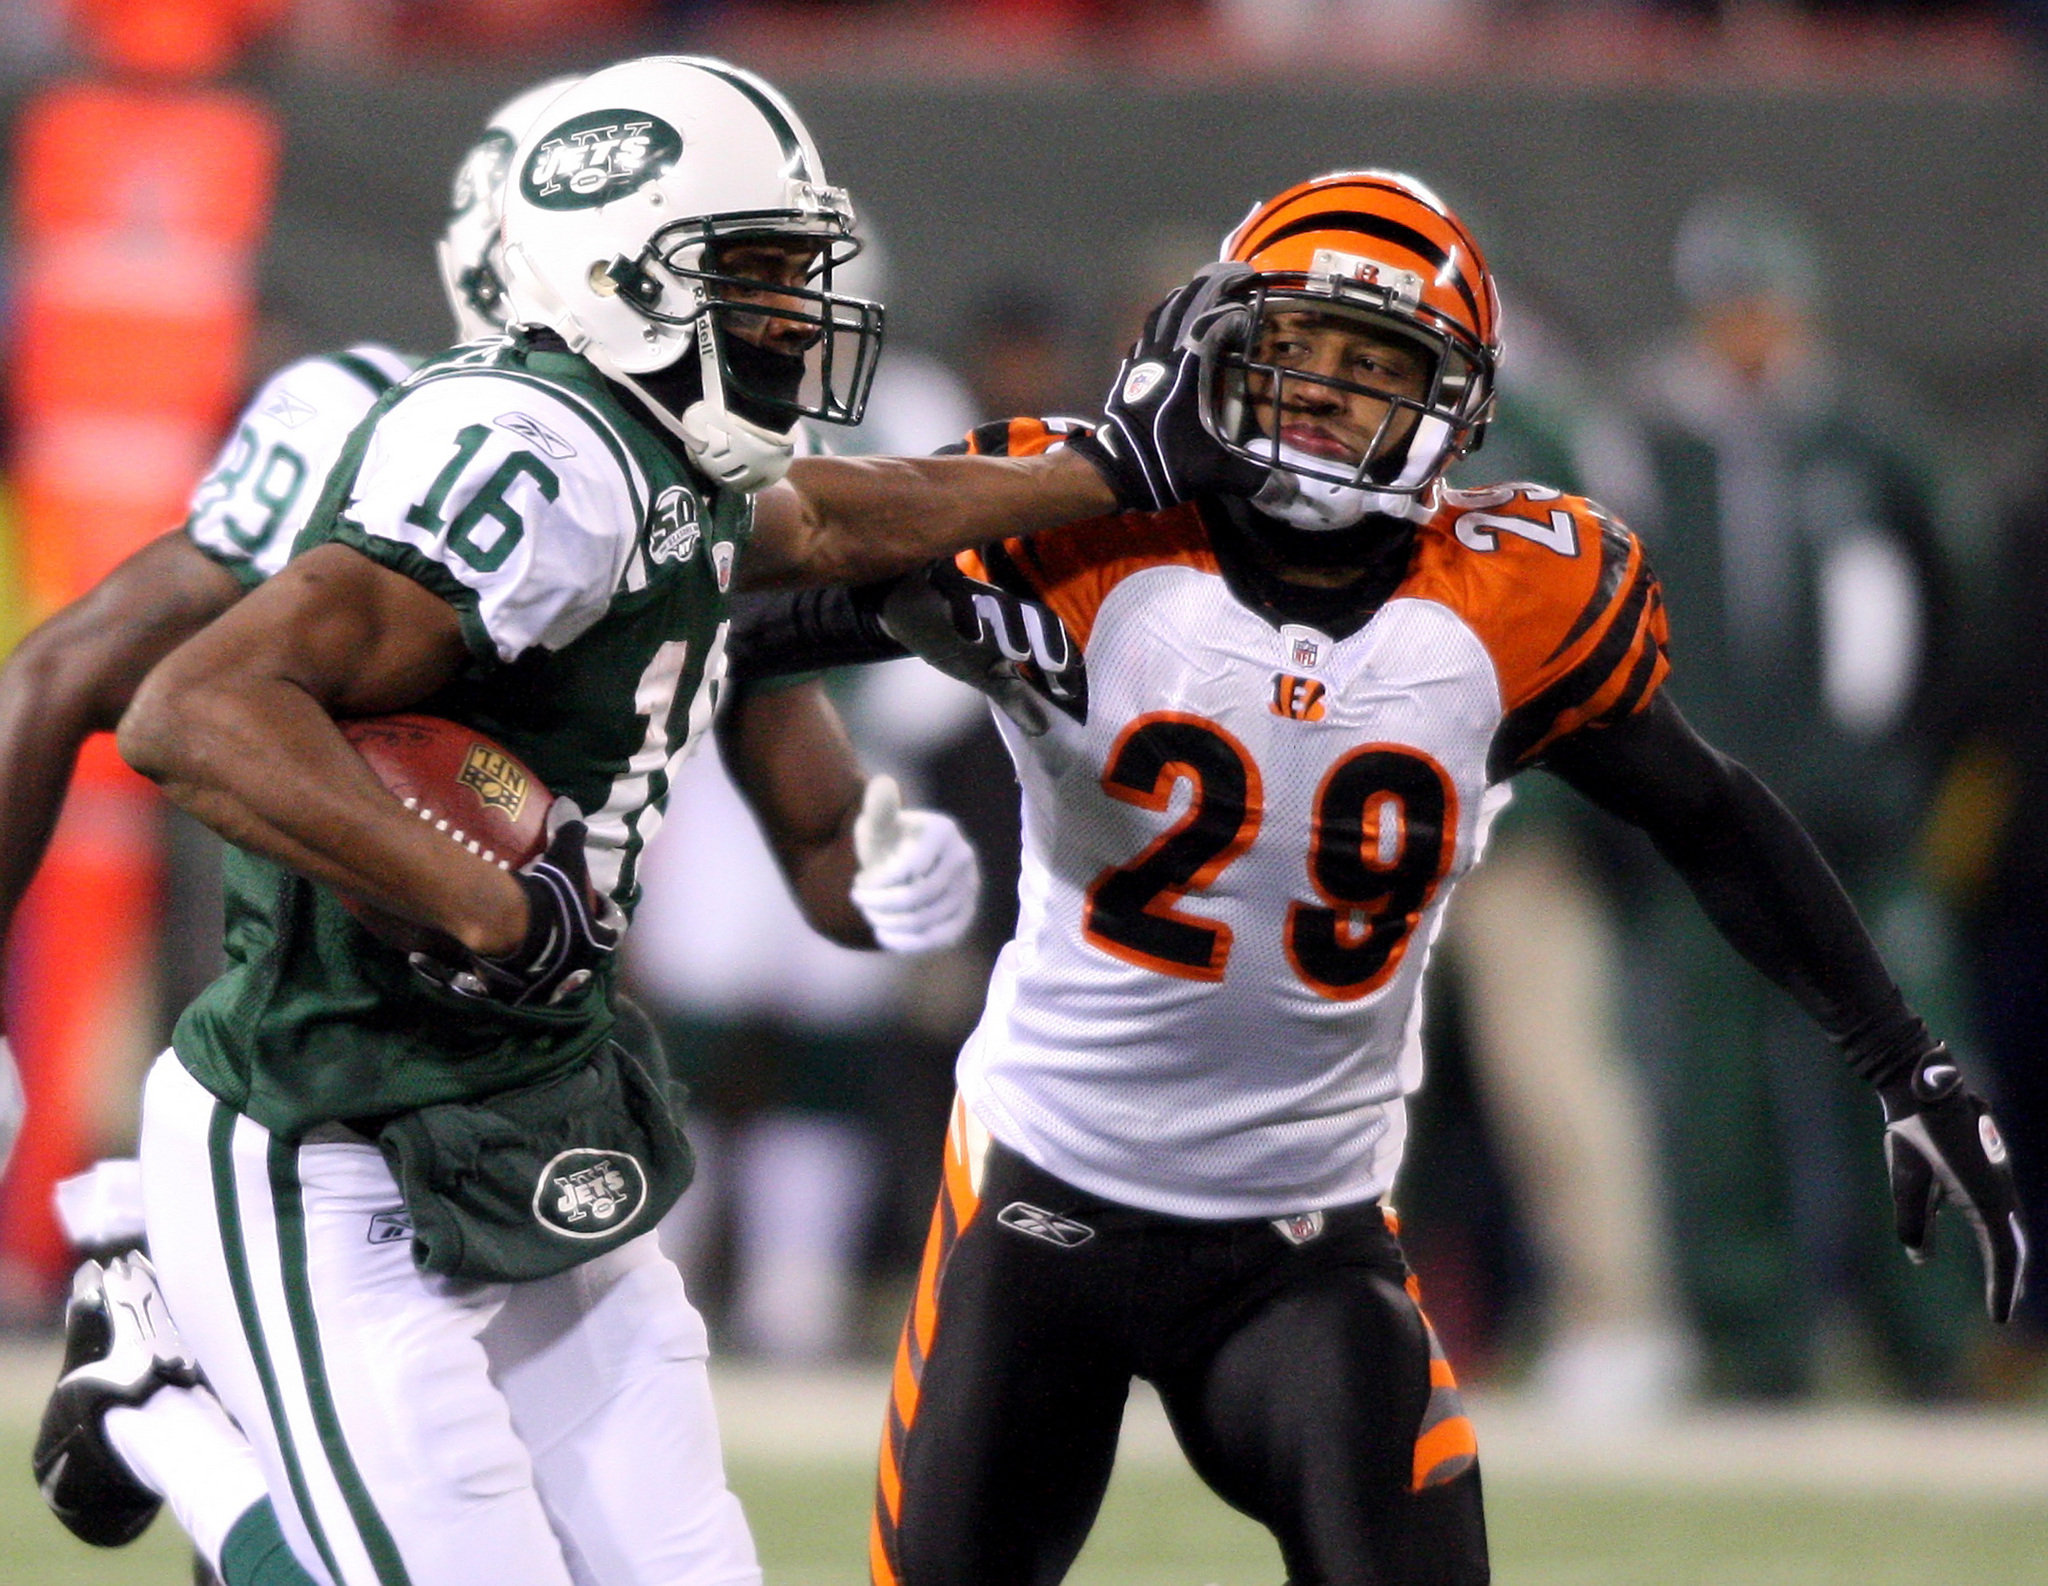 bengals-hall-jets-smith-mctjpg-47faeb8764039672